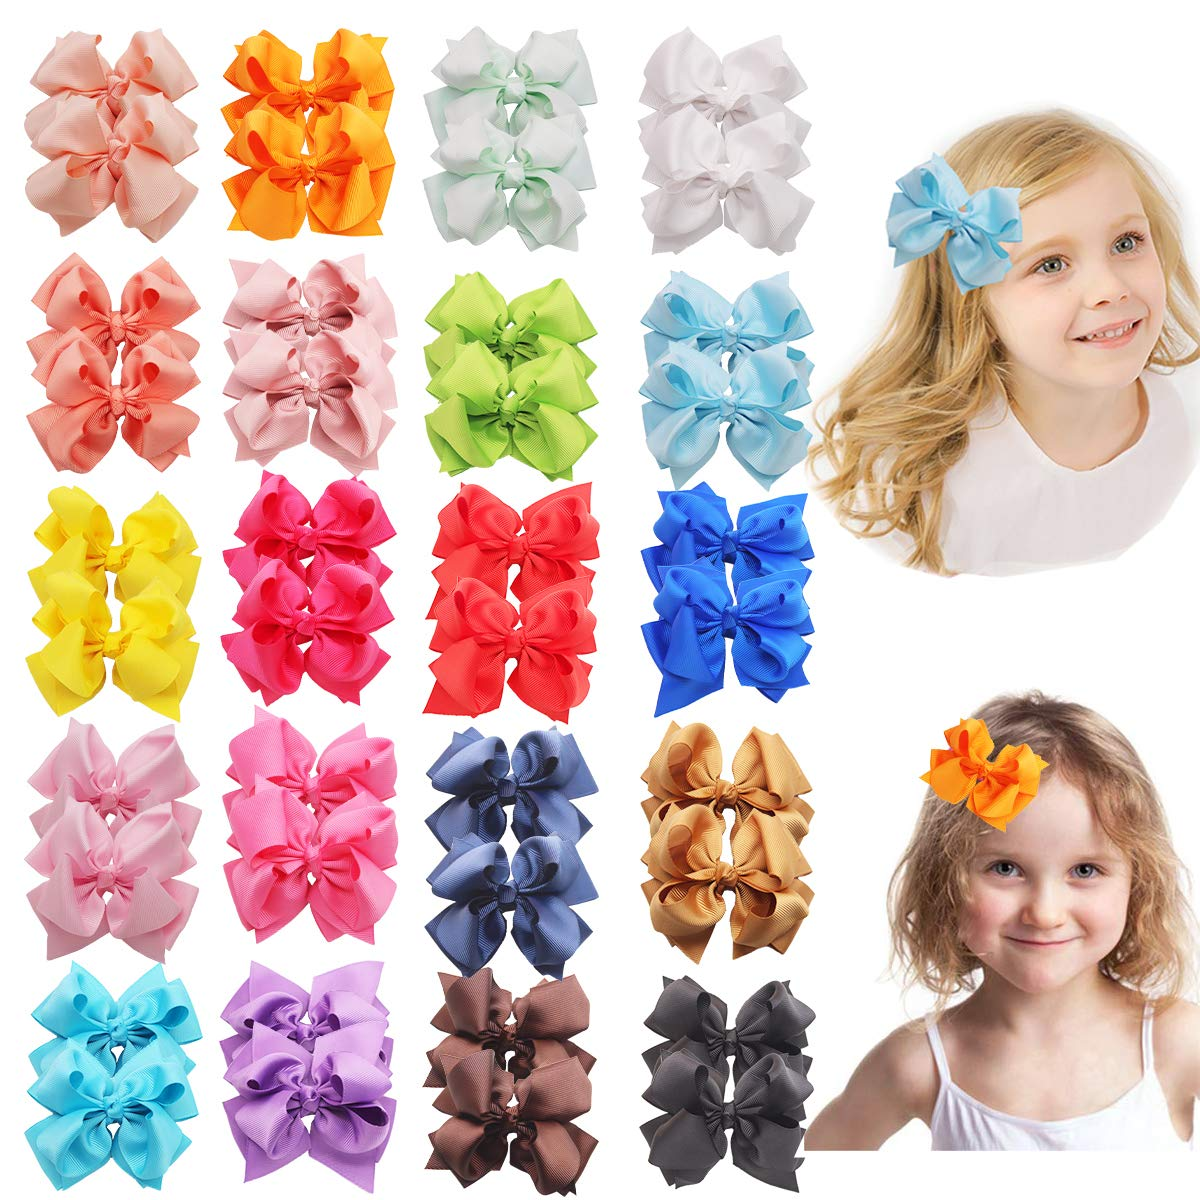 40pcs Weekly update 20 Colors Hair Bows for Solid 3Inch All stores are sold Girls Color Grosgrain